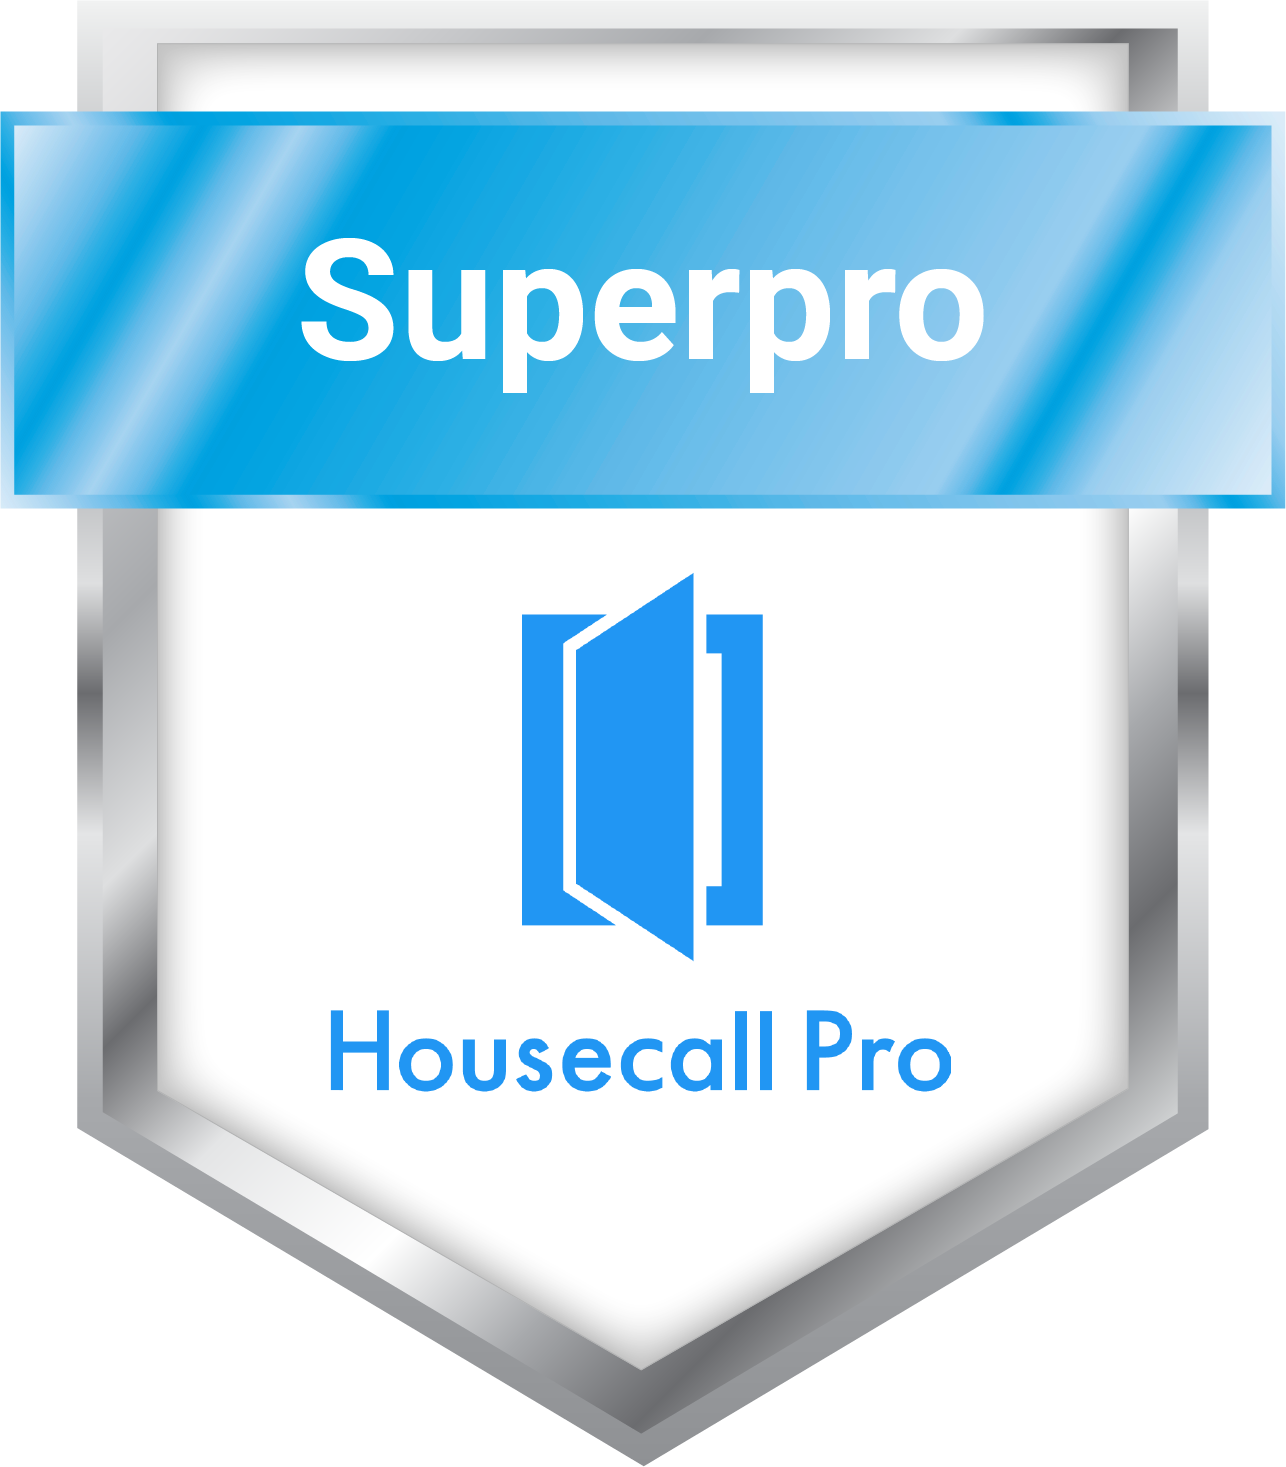 We are proud to be a Superpro on Housecall Pro